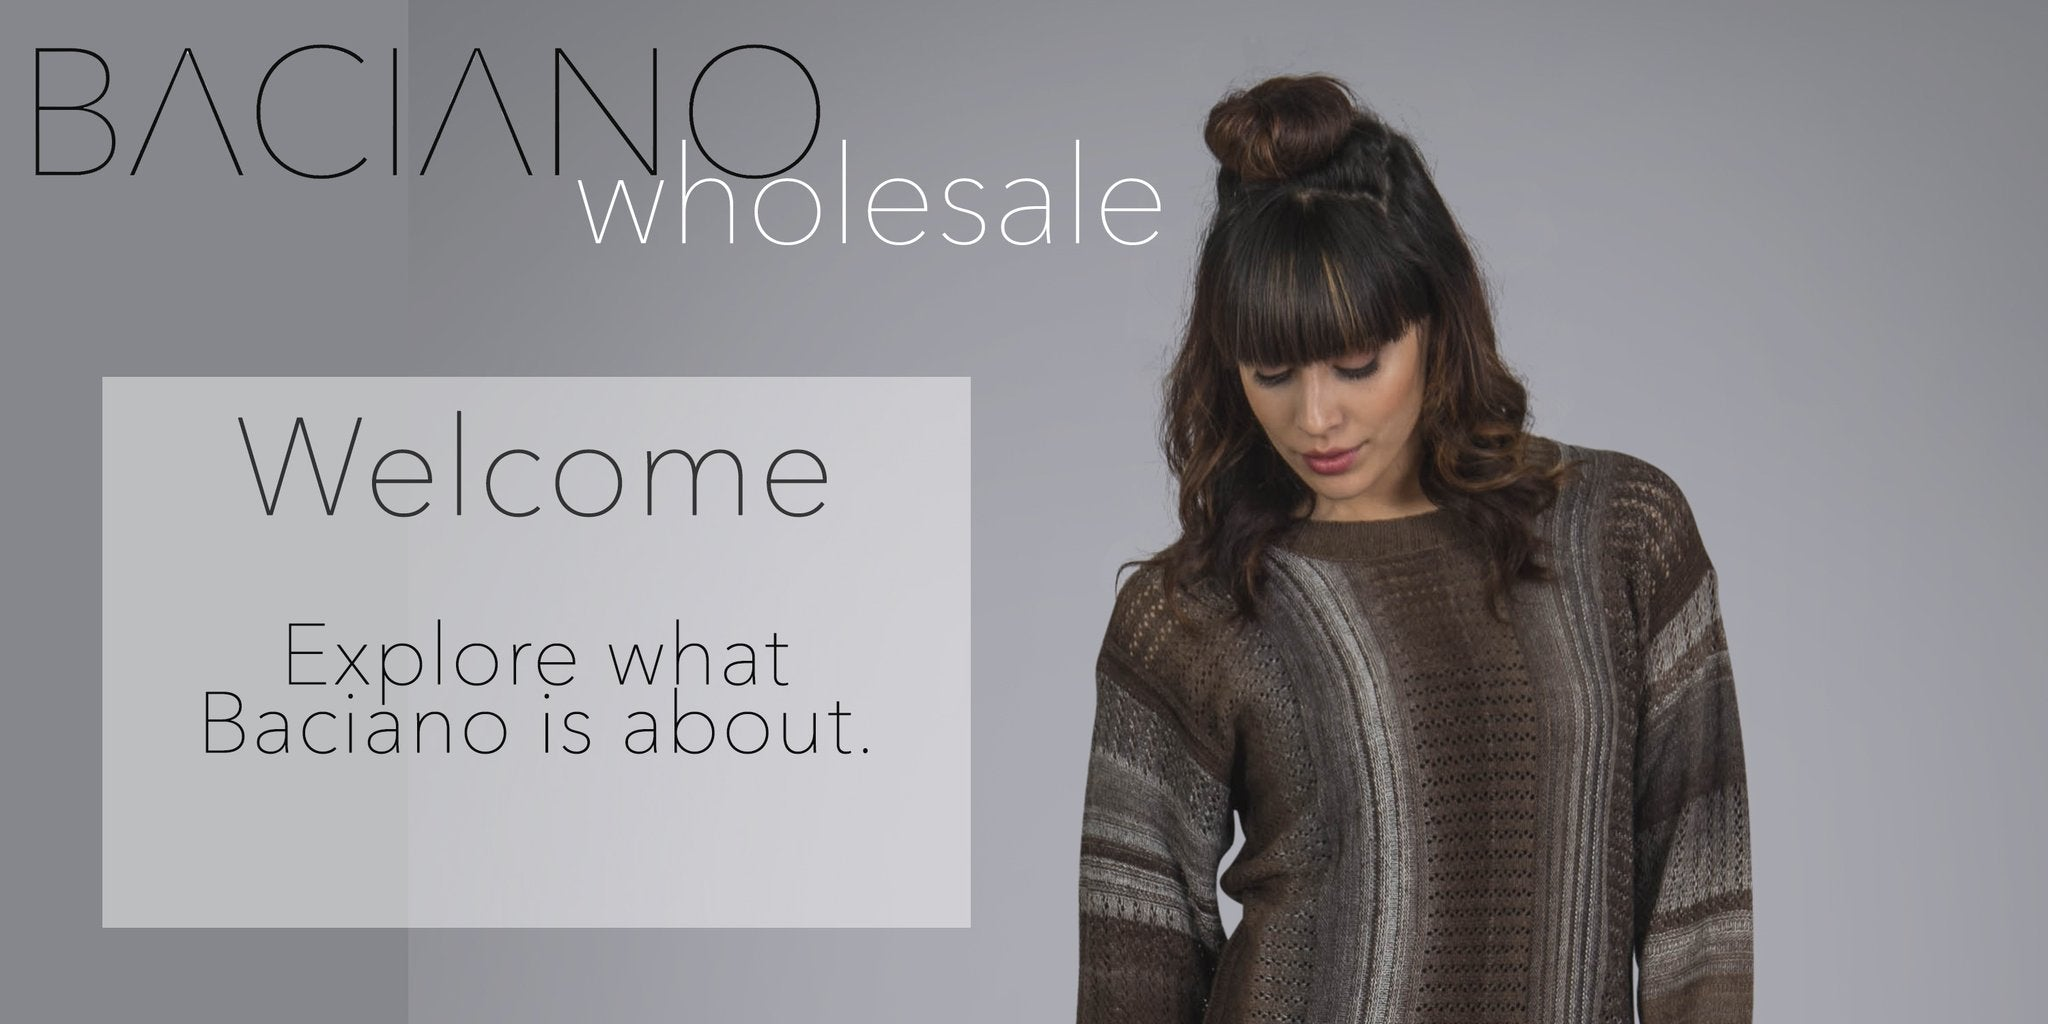 Welcome to the baciano wholesale page.